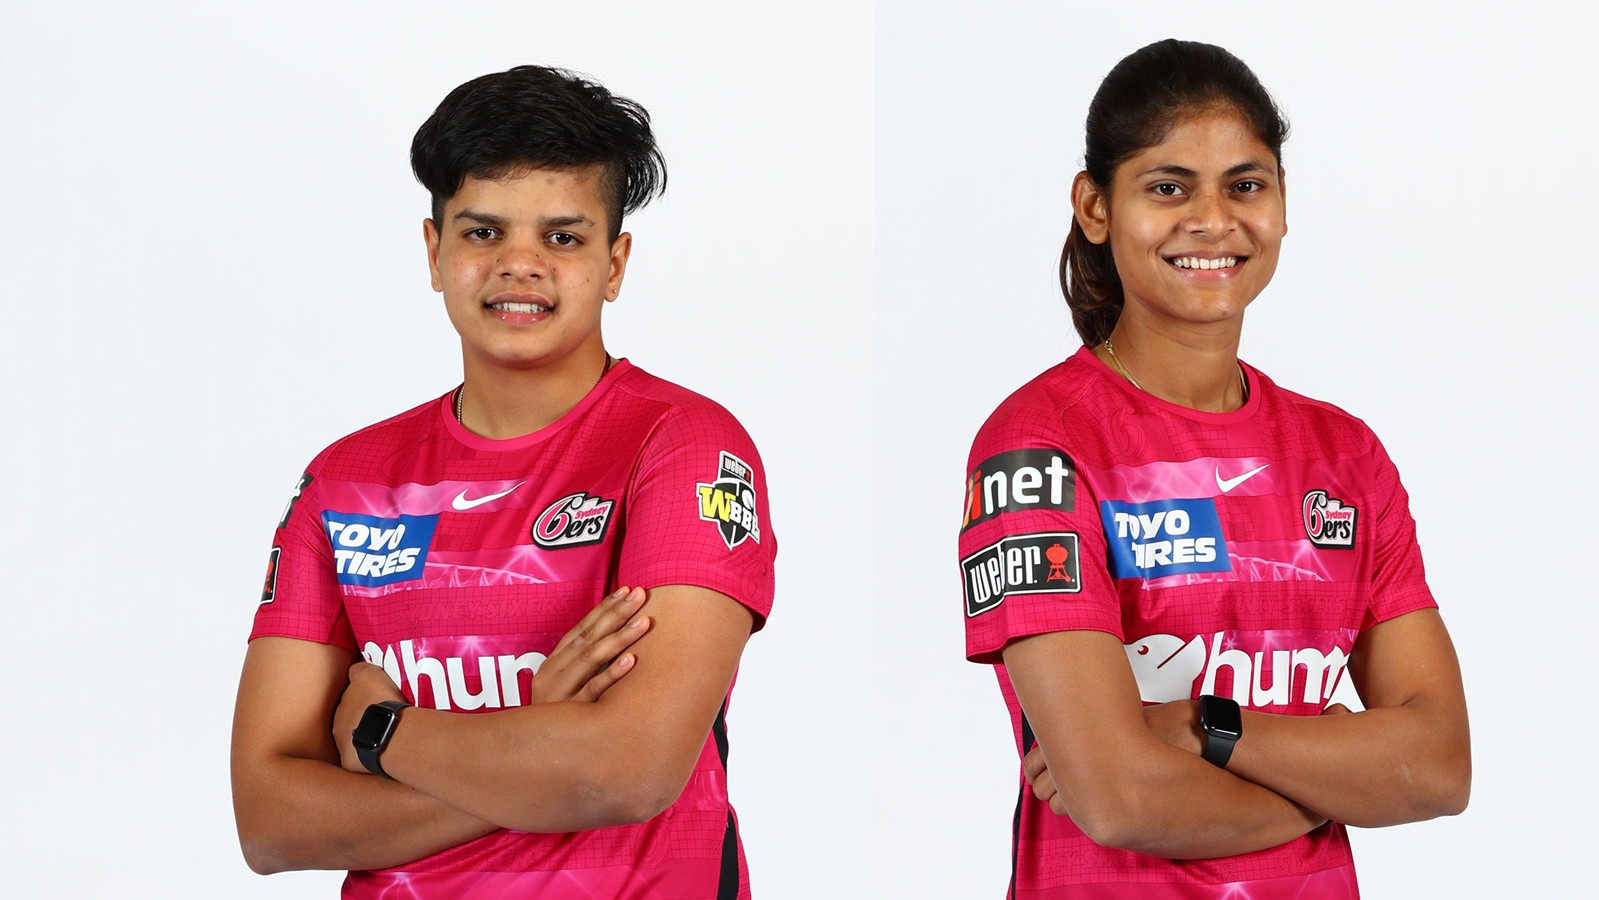 WBBL 2021: India's Shafali Verma and Radha Yadav set to play for Sydney Sixers